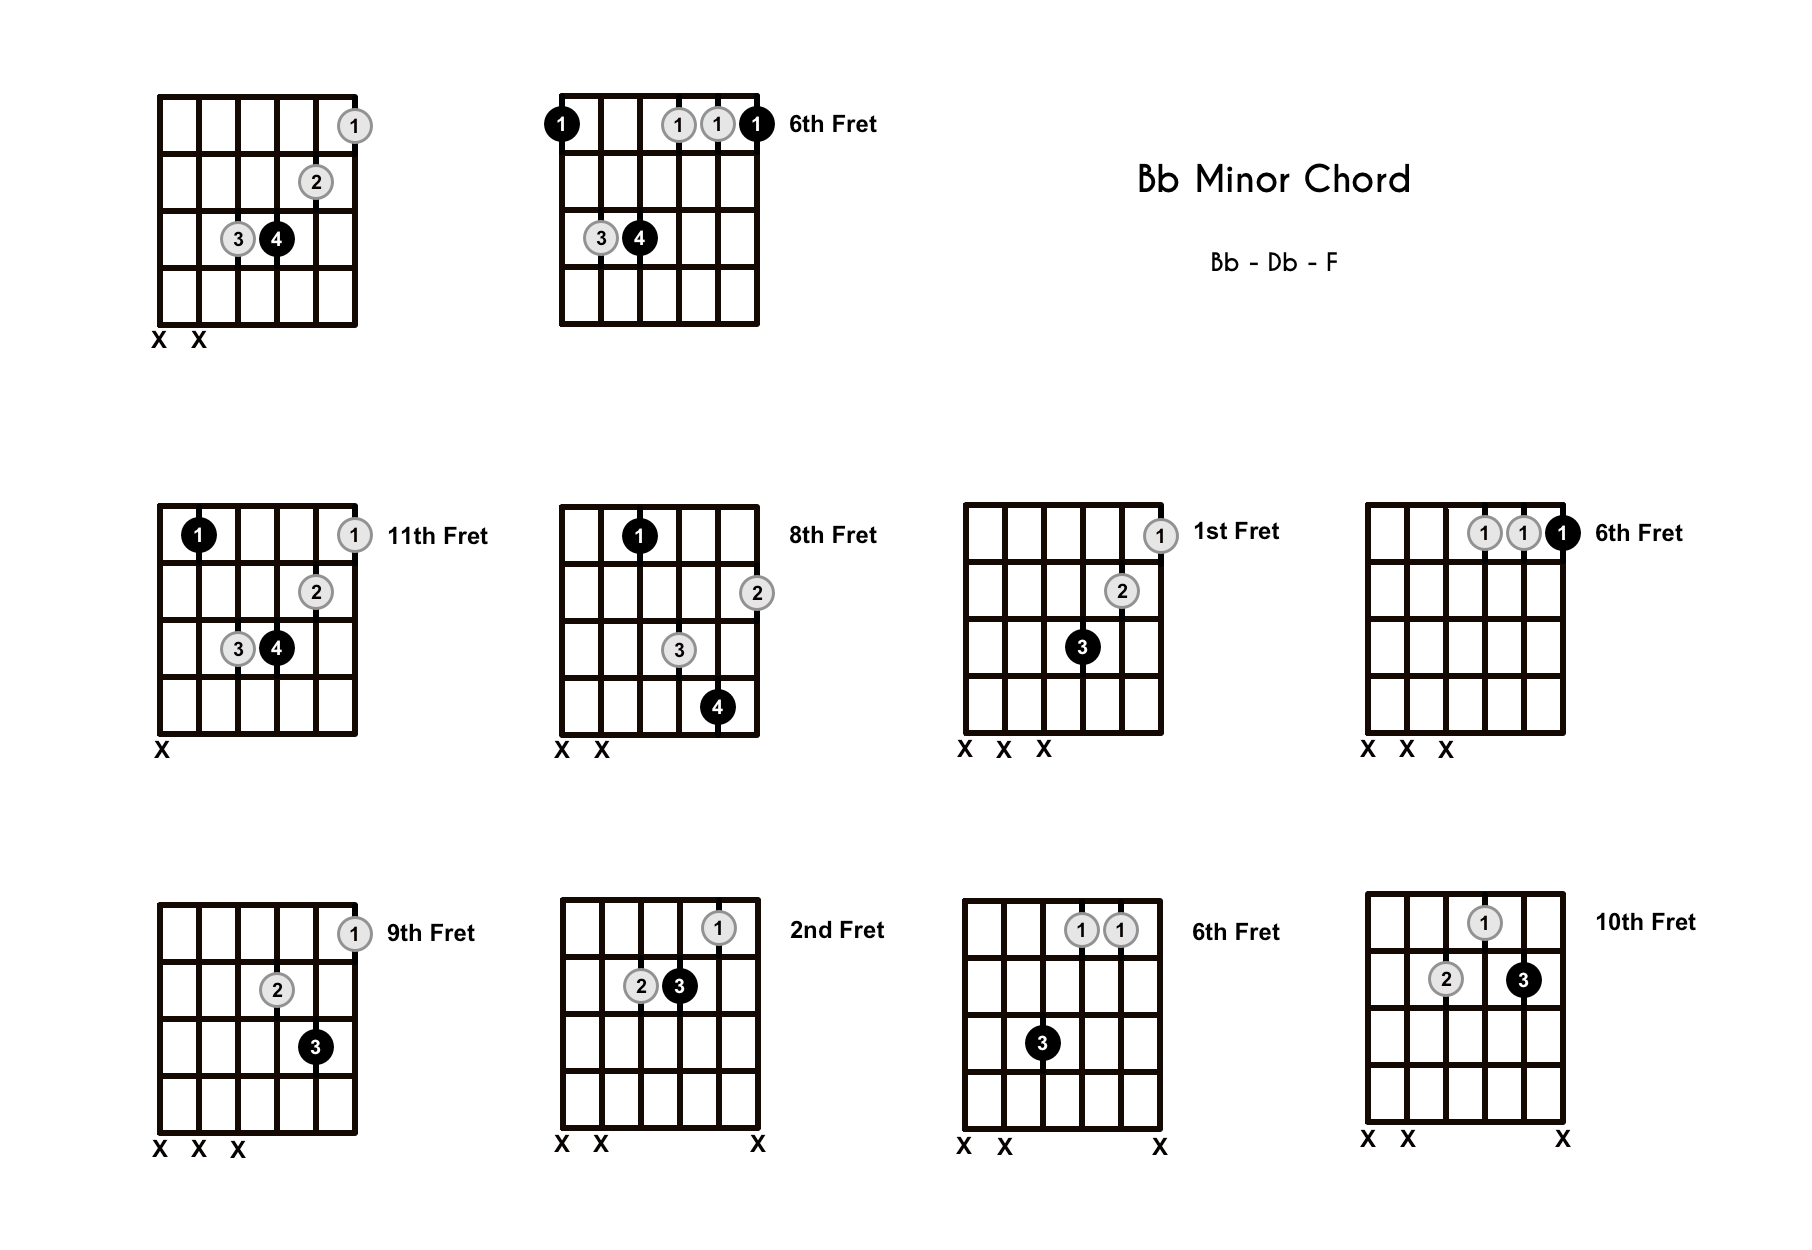 Bbm Chord on the Guitar (B Flat Minor) – Diagrams, Finger Positions, Theory